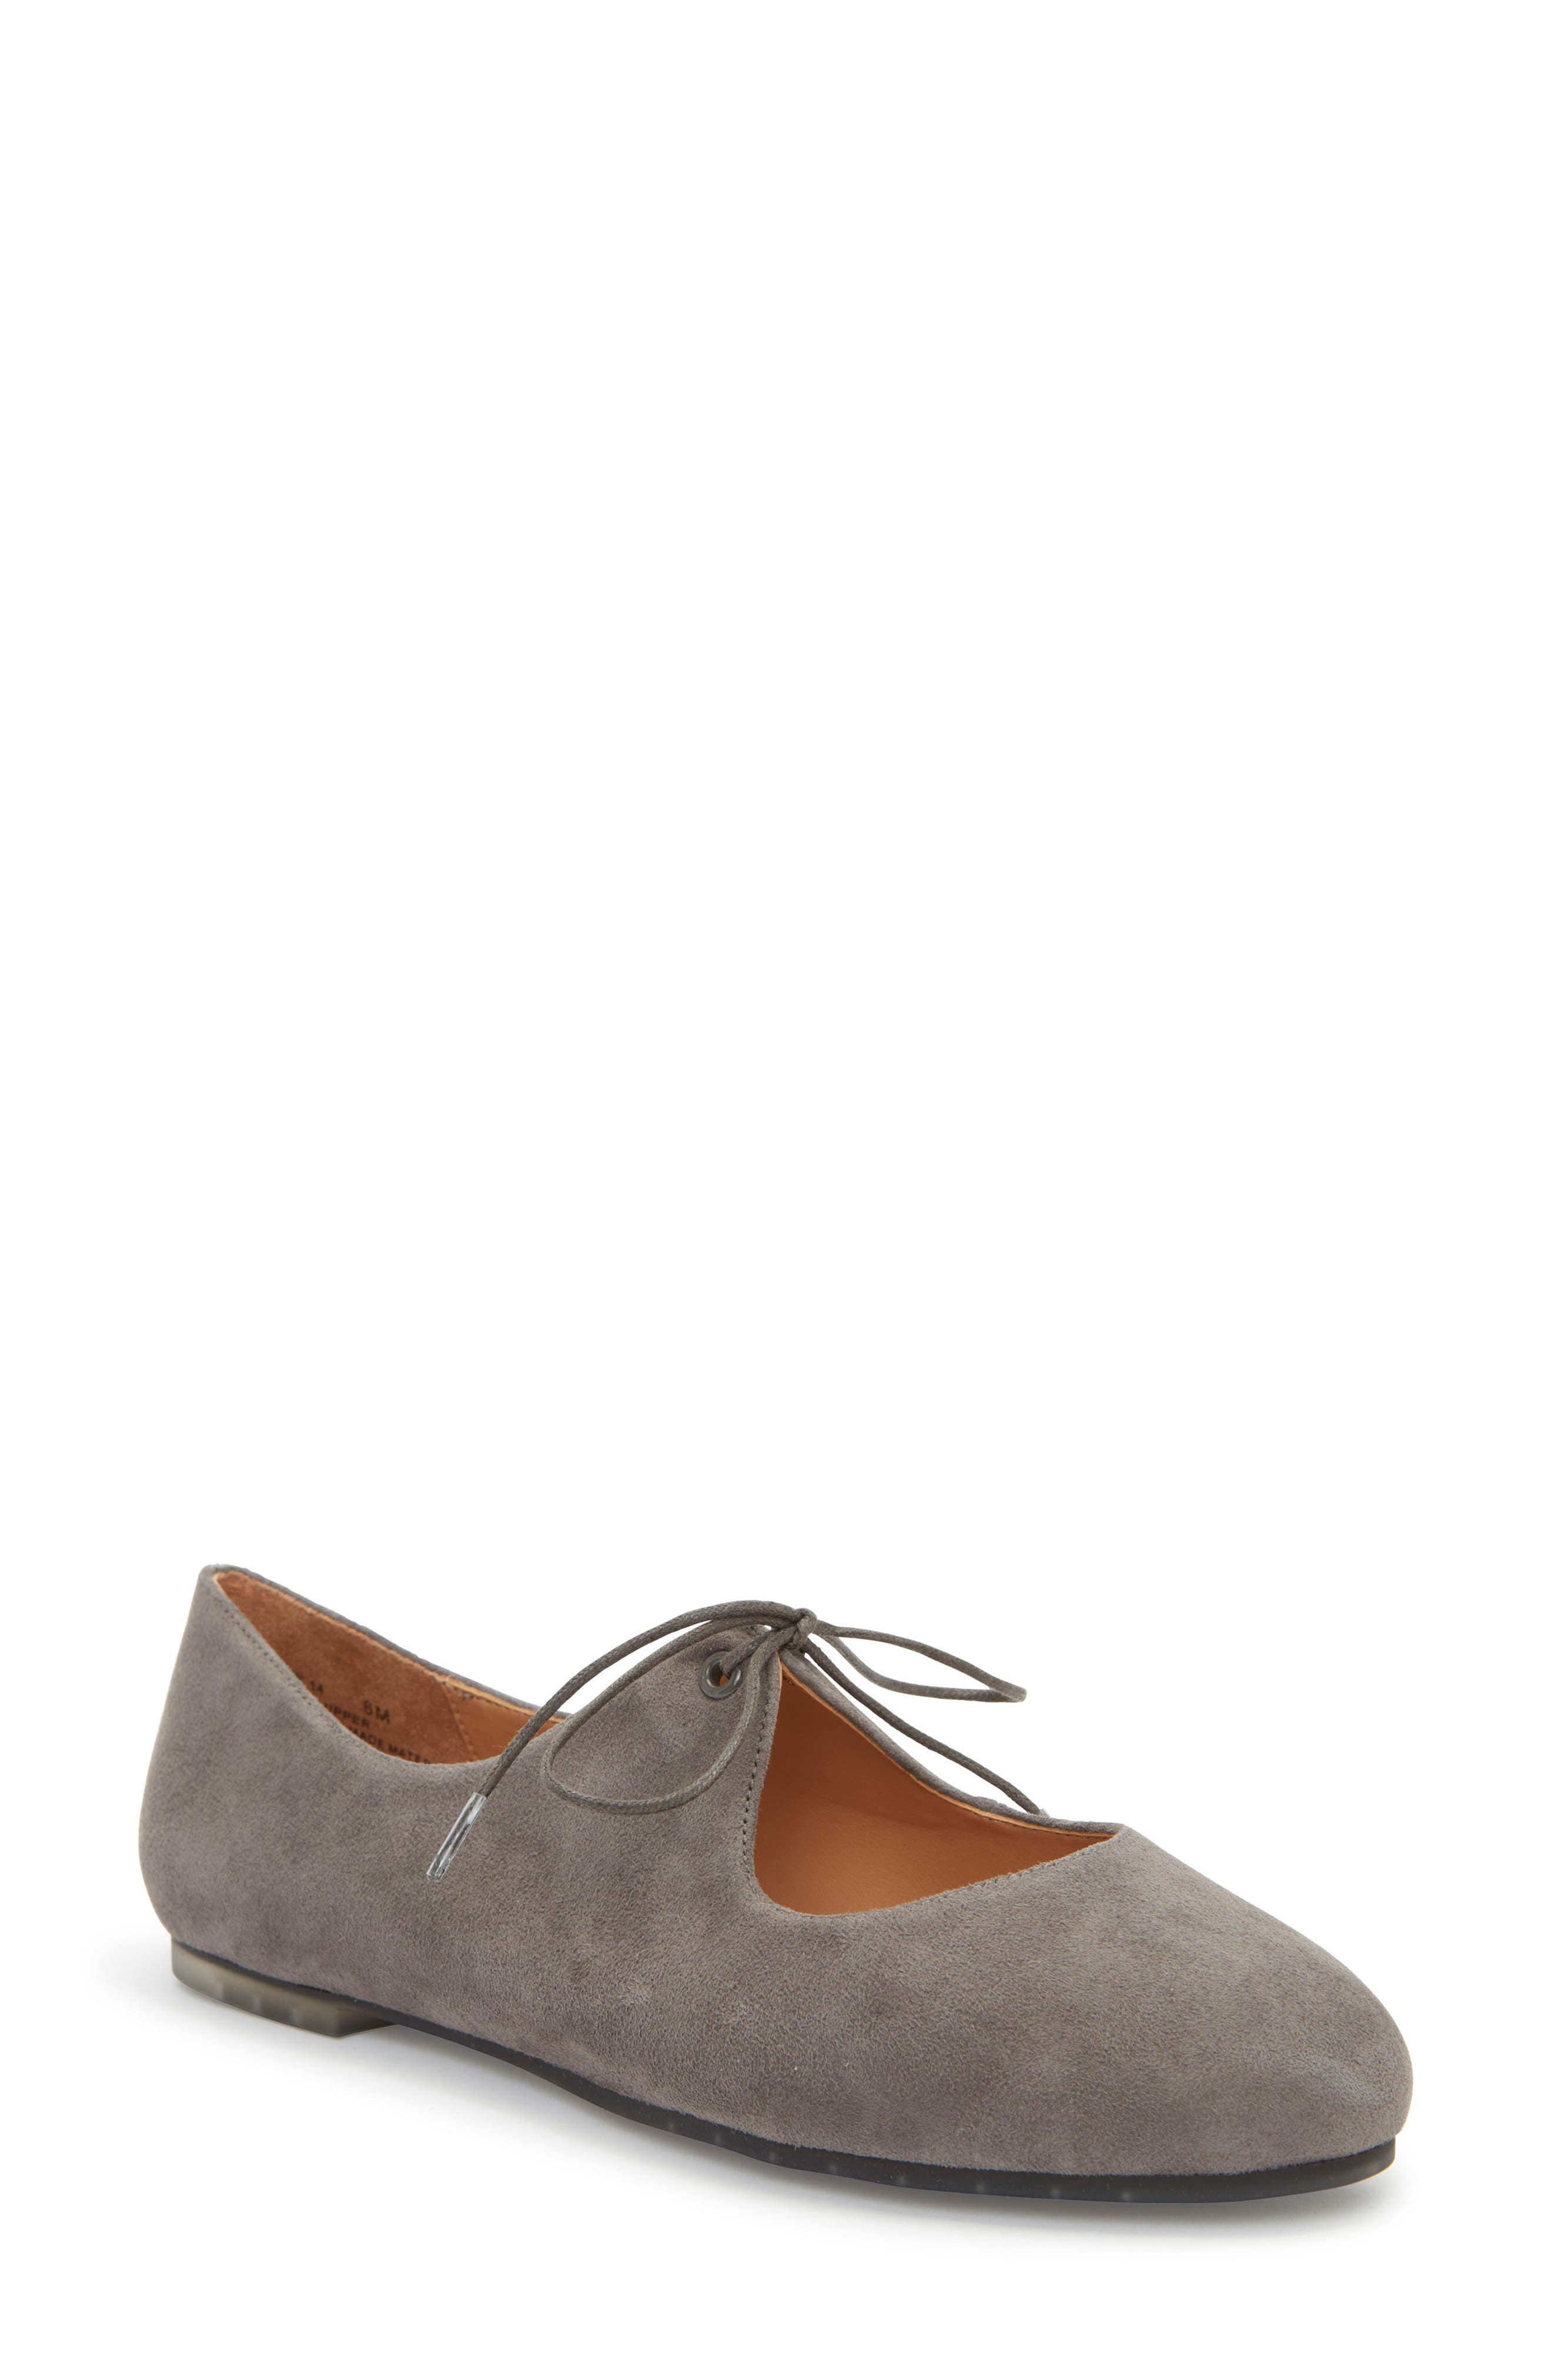 Cacey Mary Jane Flat,                             Main thumbnail 1, color,                             Charcoal Suede